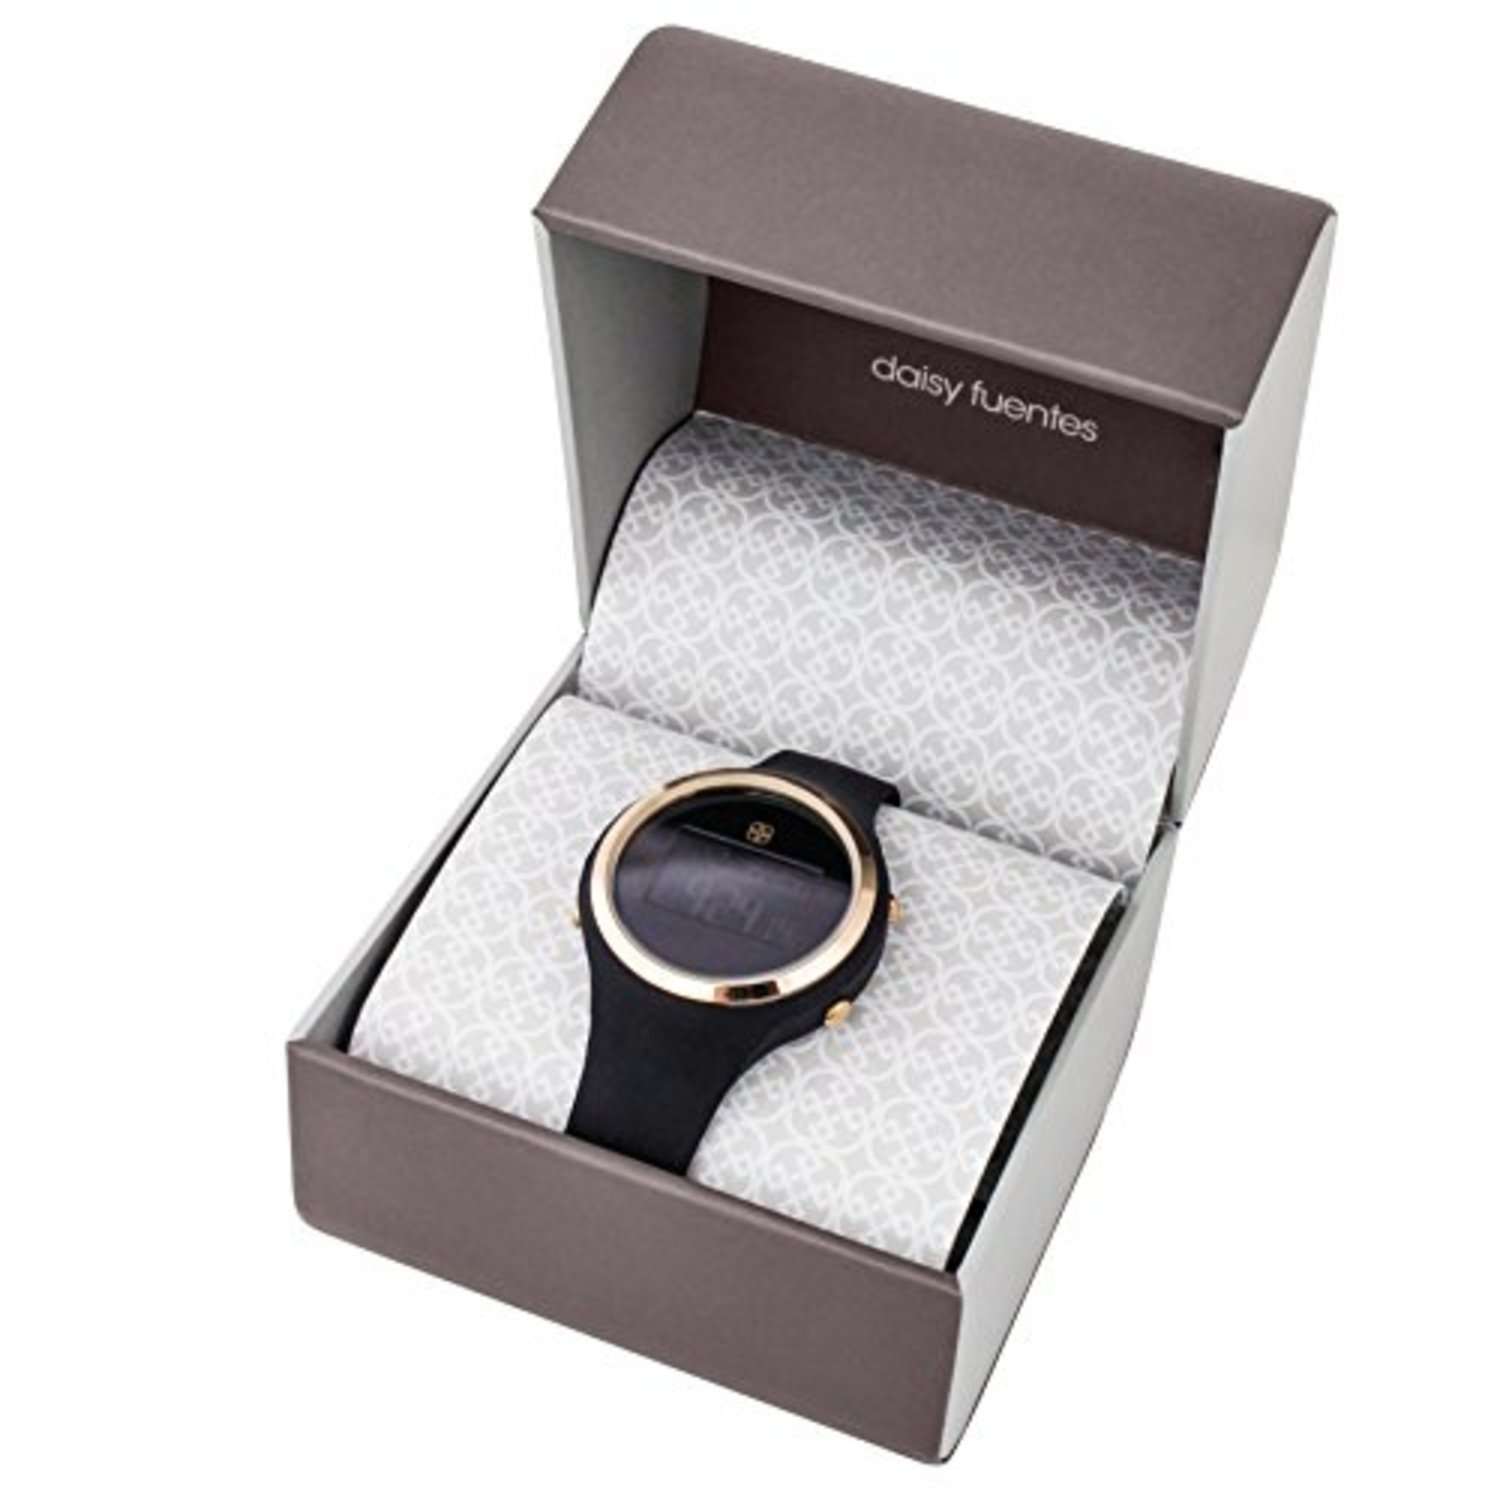 Amazon.com: Daisy Fuentes Digital Wrist Watch for Women, Silicone Band, Black & Rose Gold Face: Health & Personal Care